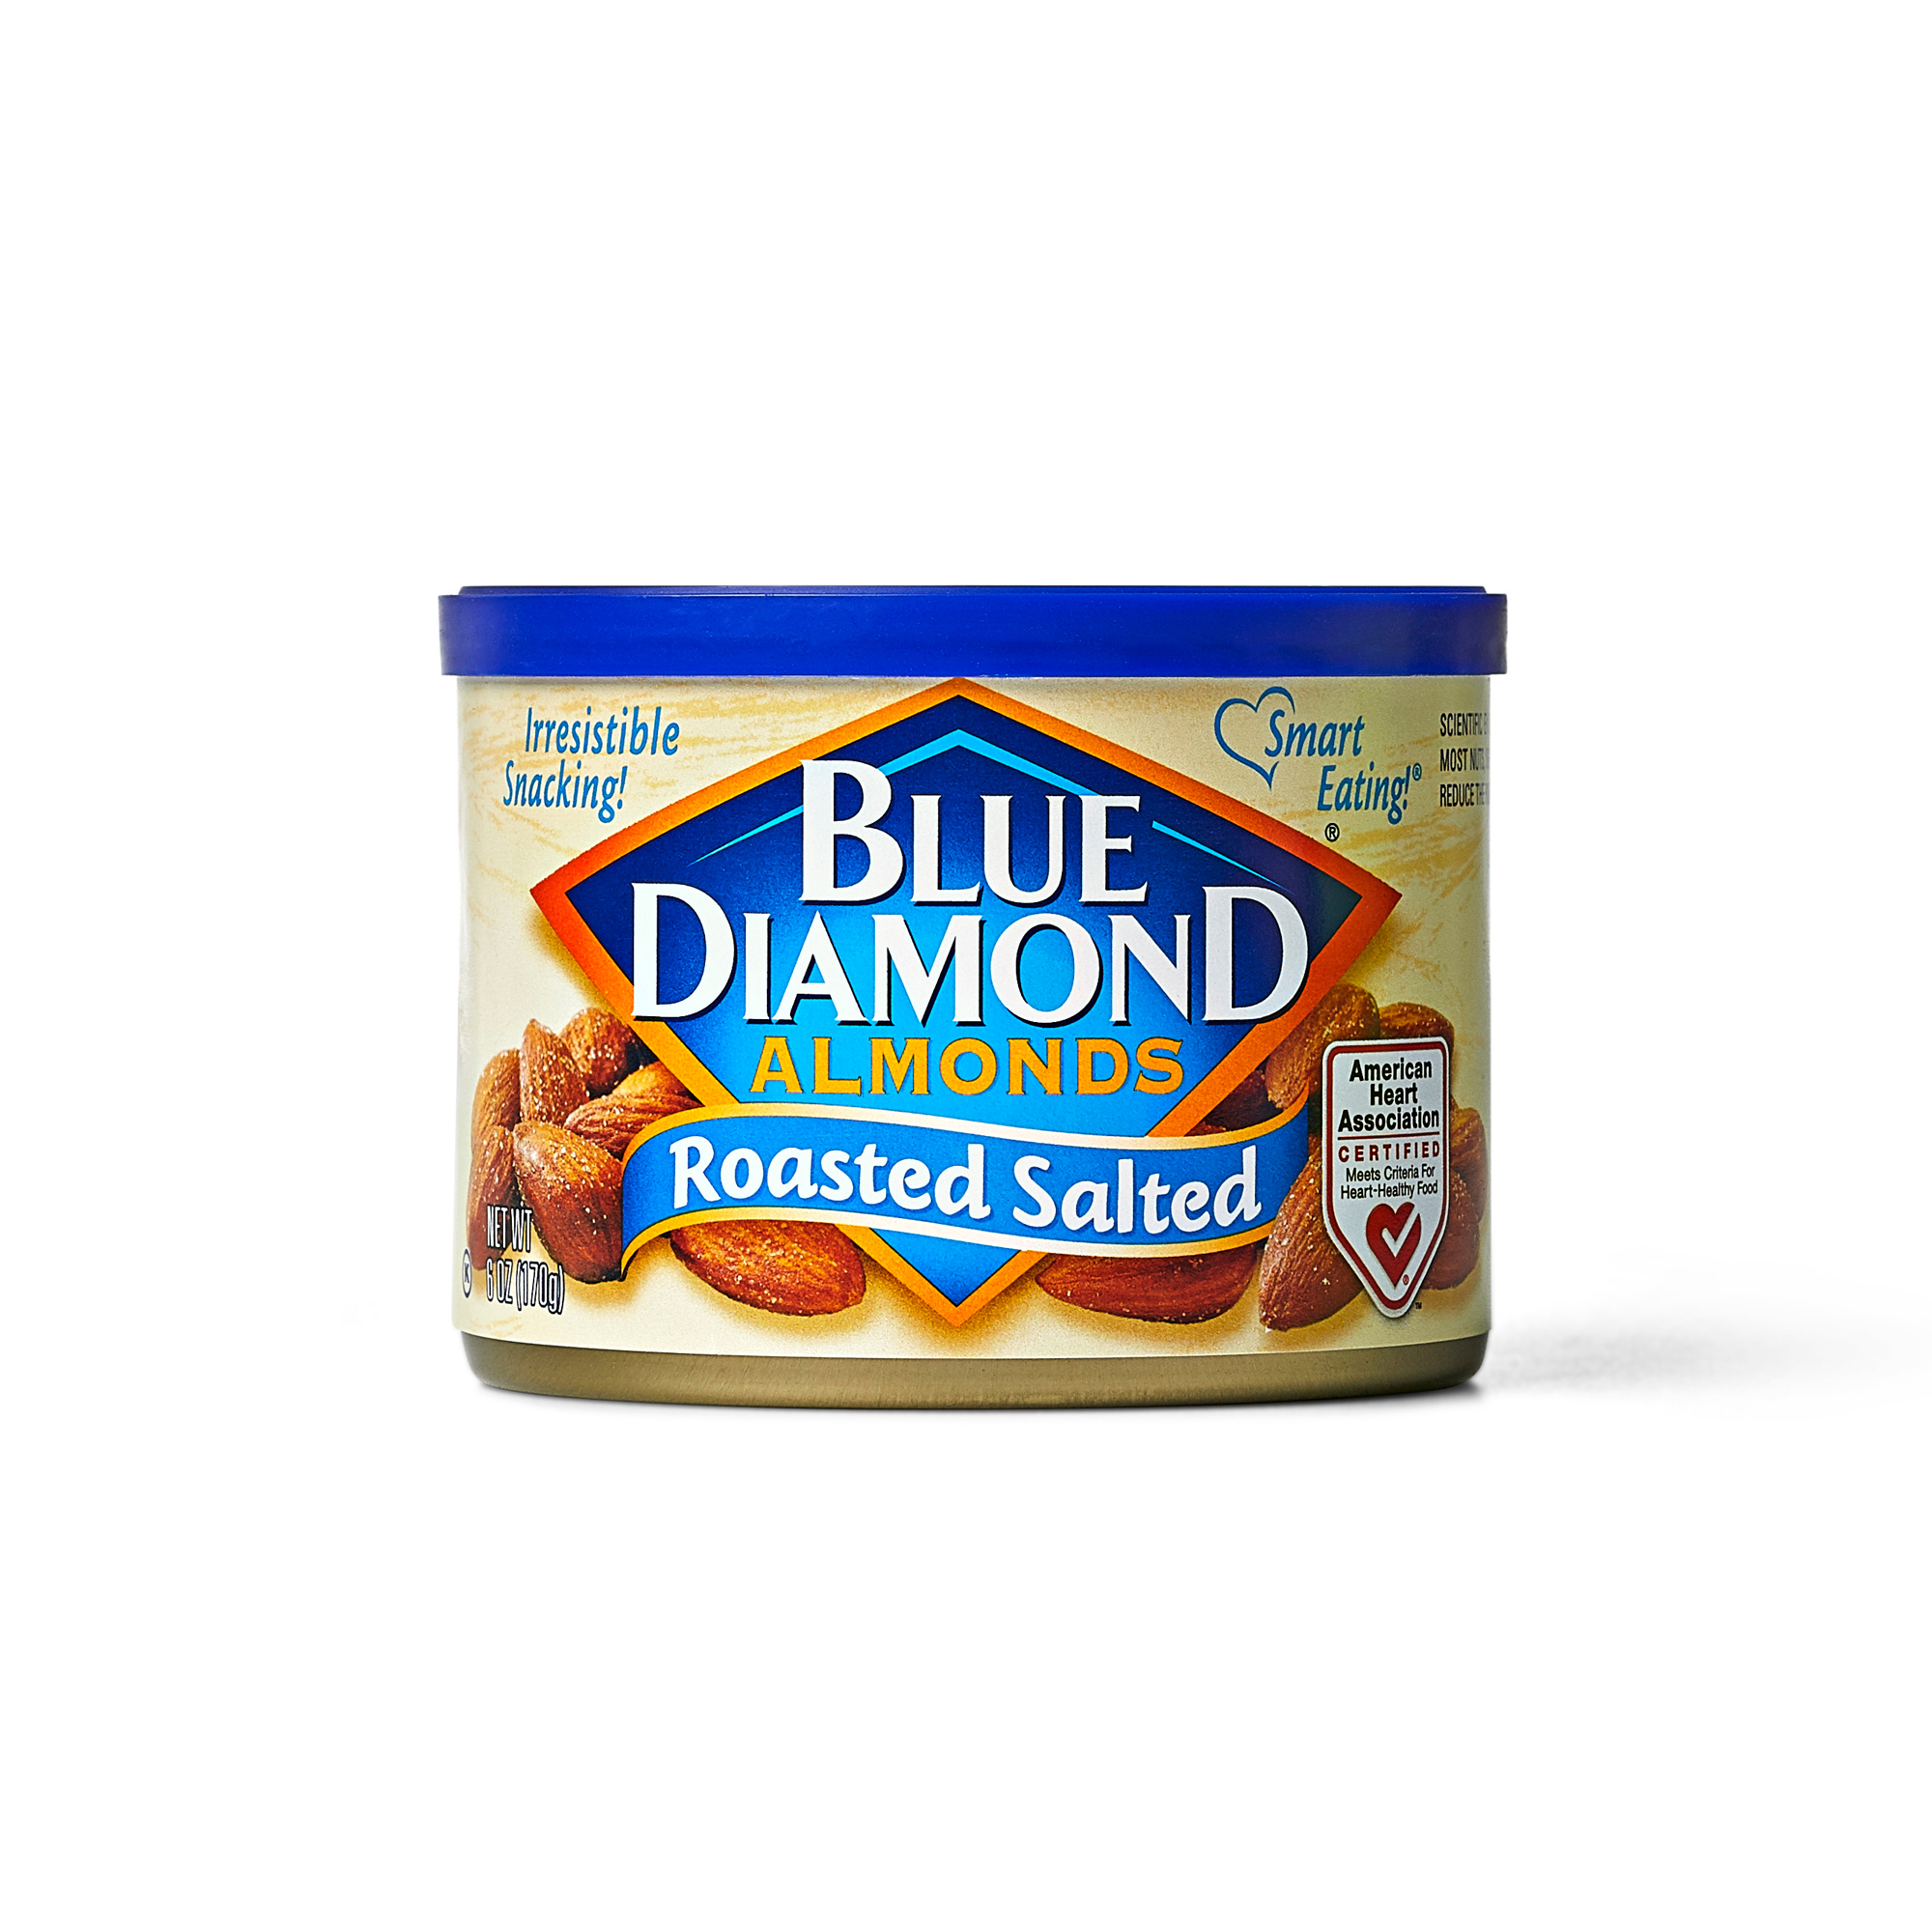 Blue Diamond roasted salted almonds